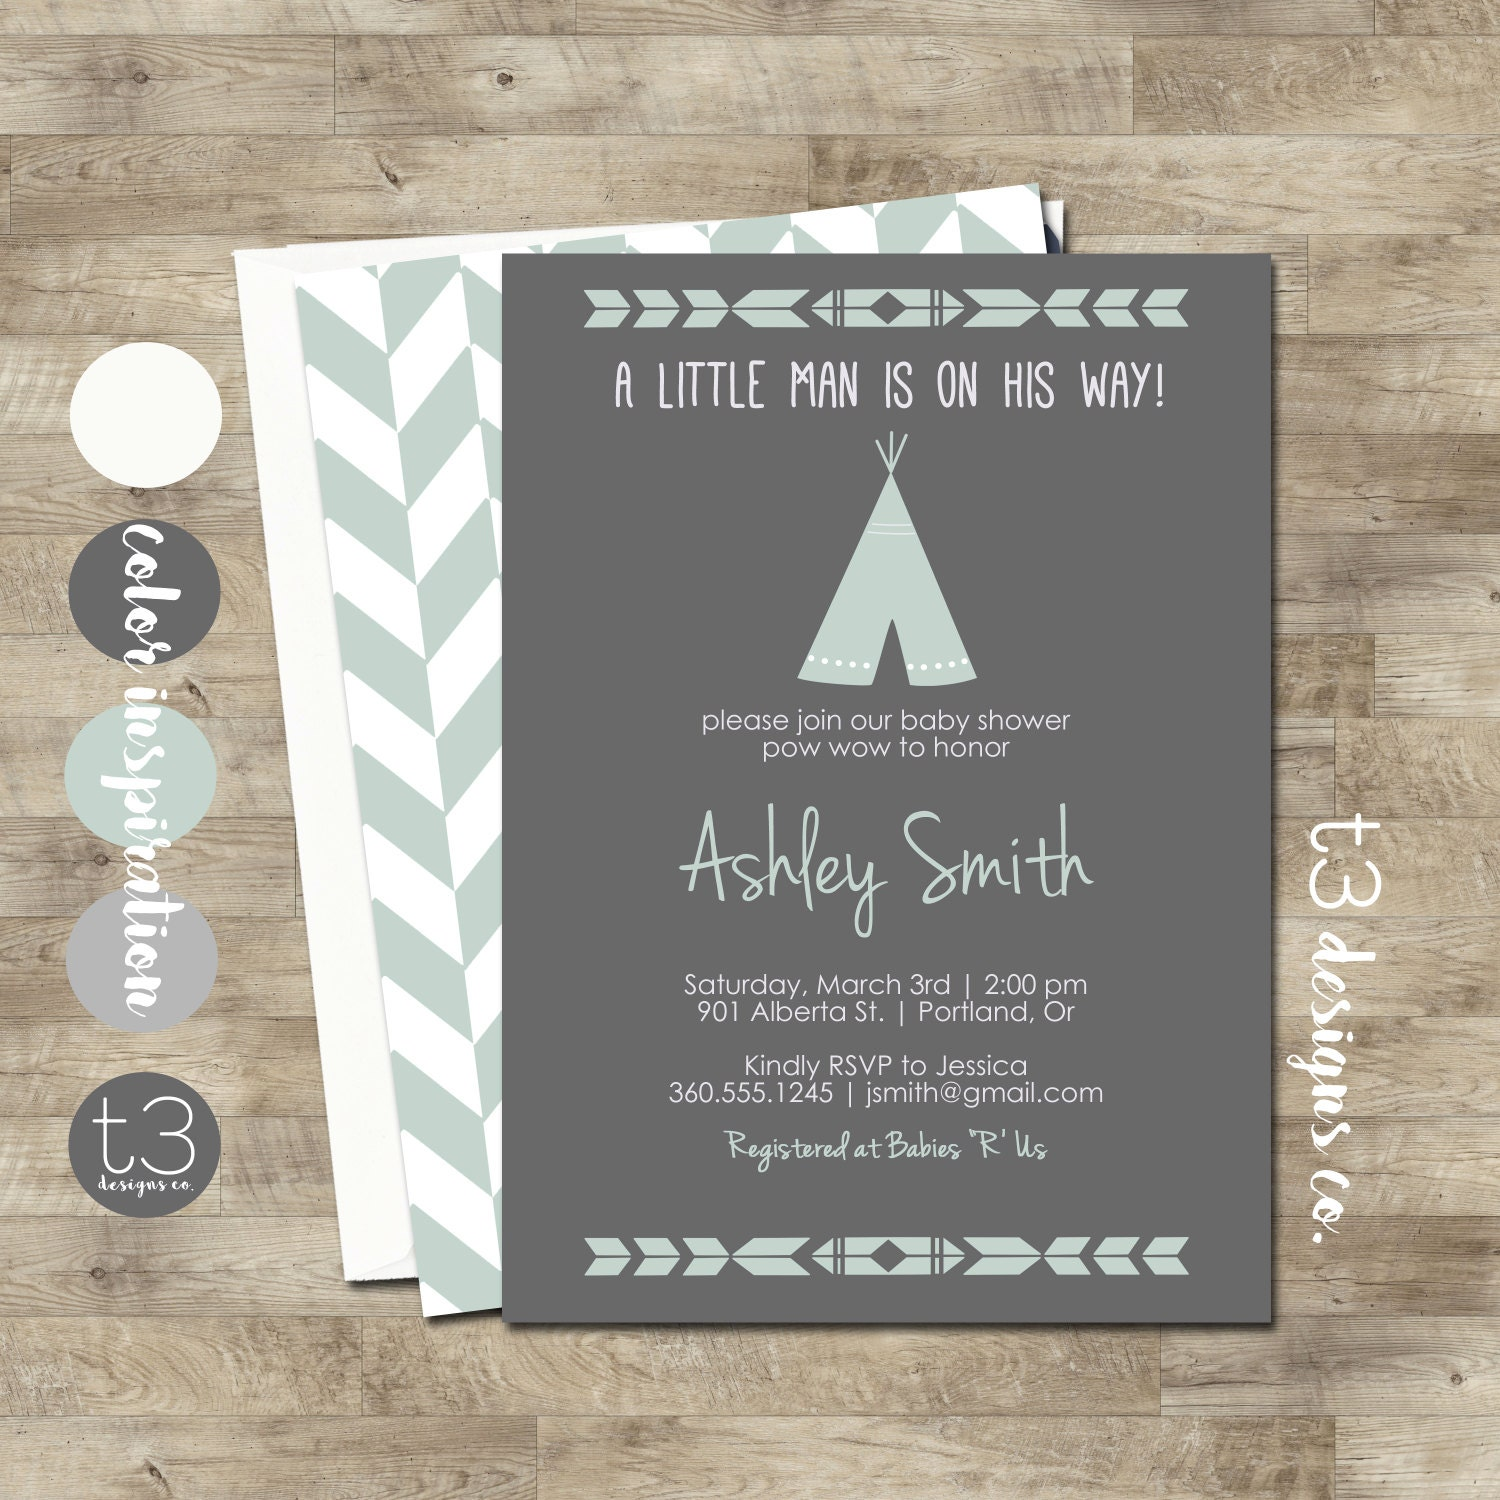 TEEPEE Baby Shower Invitation Indian Baby shower Invite aztec baby